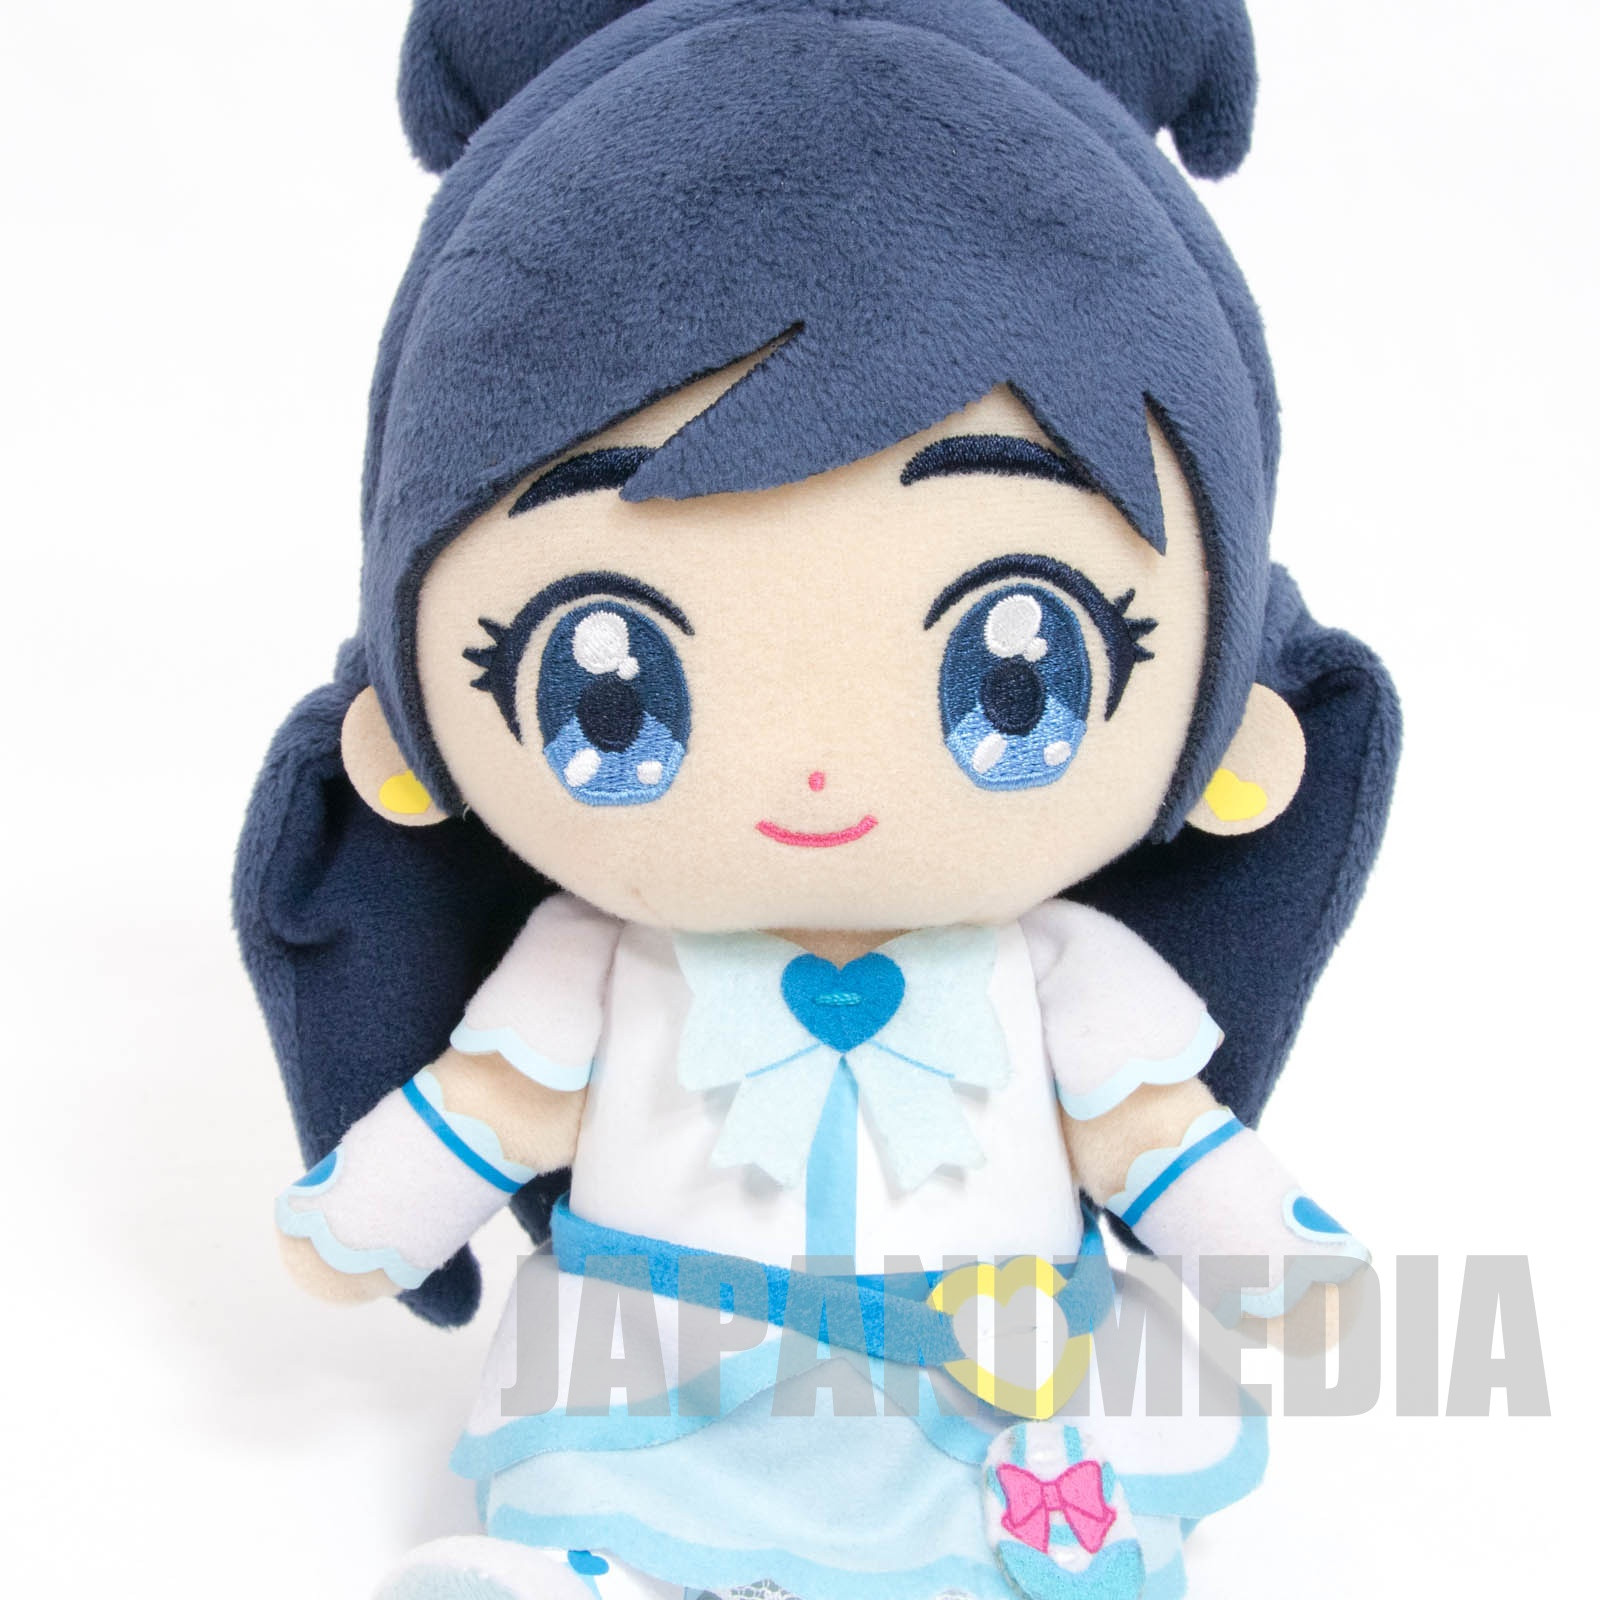 Futari wa Pretty Cure Cure White Cure Friends Plush doll JAPAN ANIME